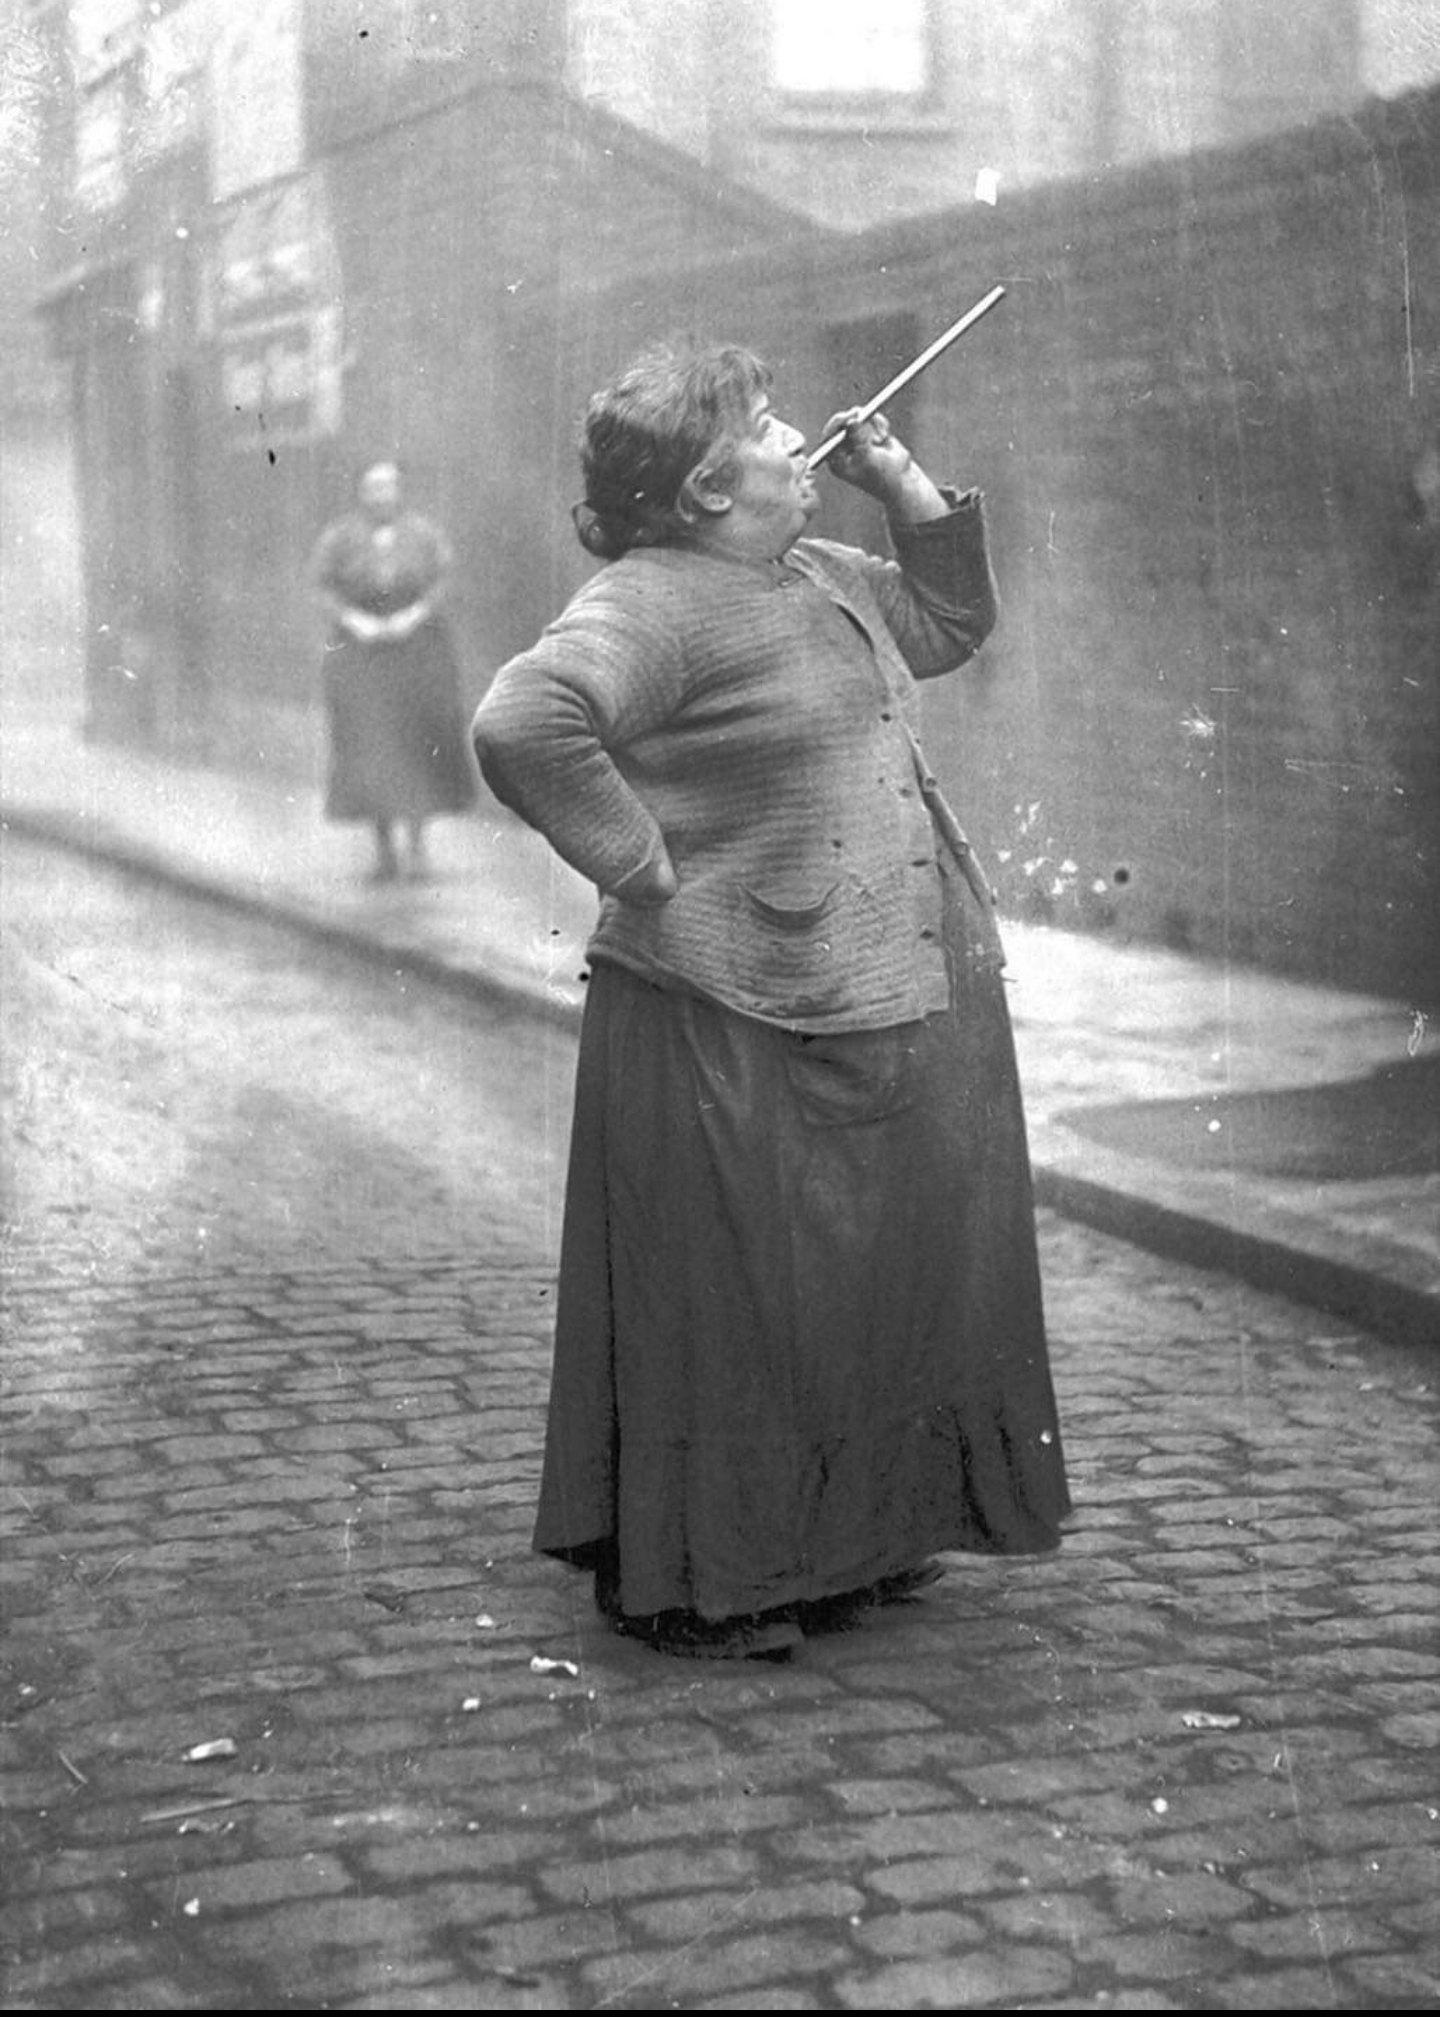 A Knocker - Upper... 1930s. More information in the comments